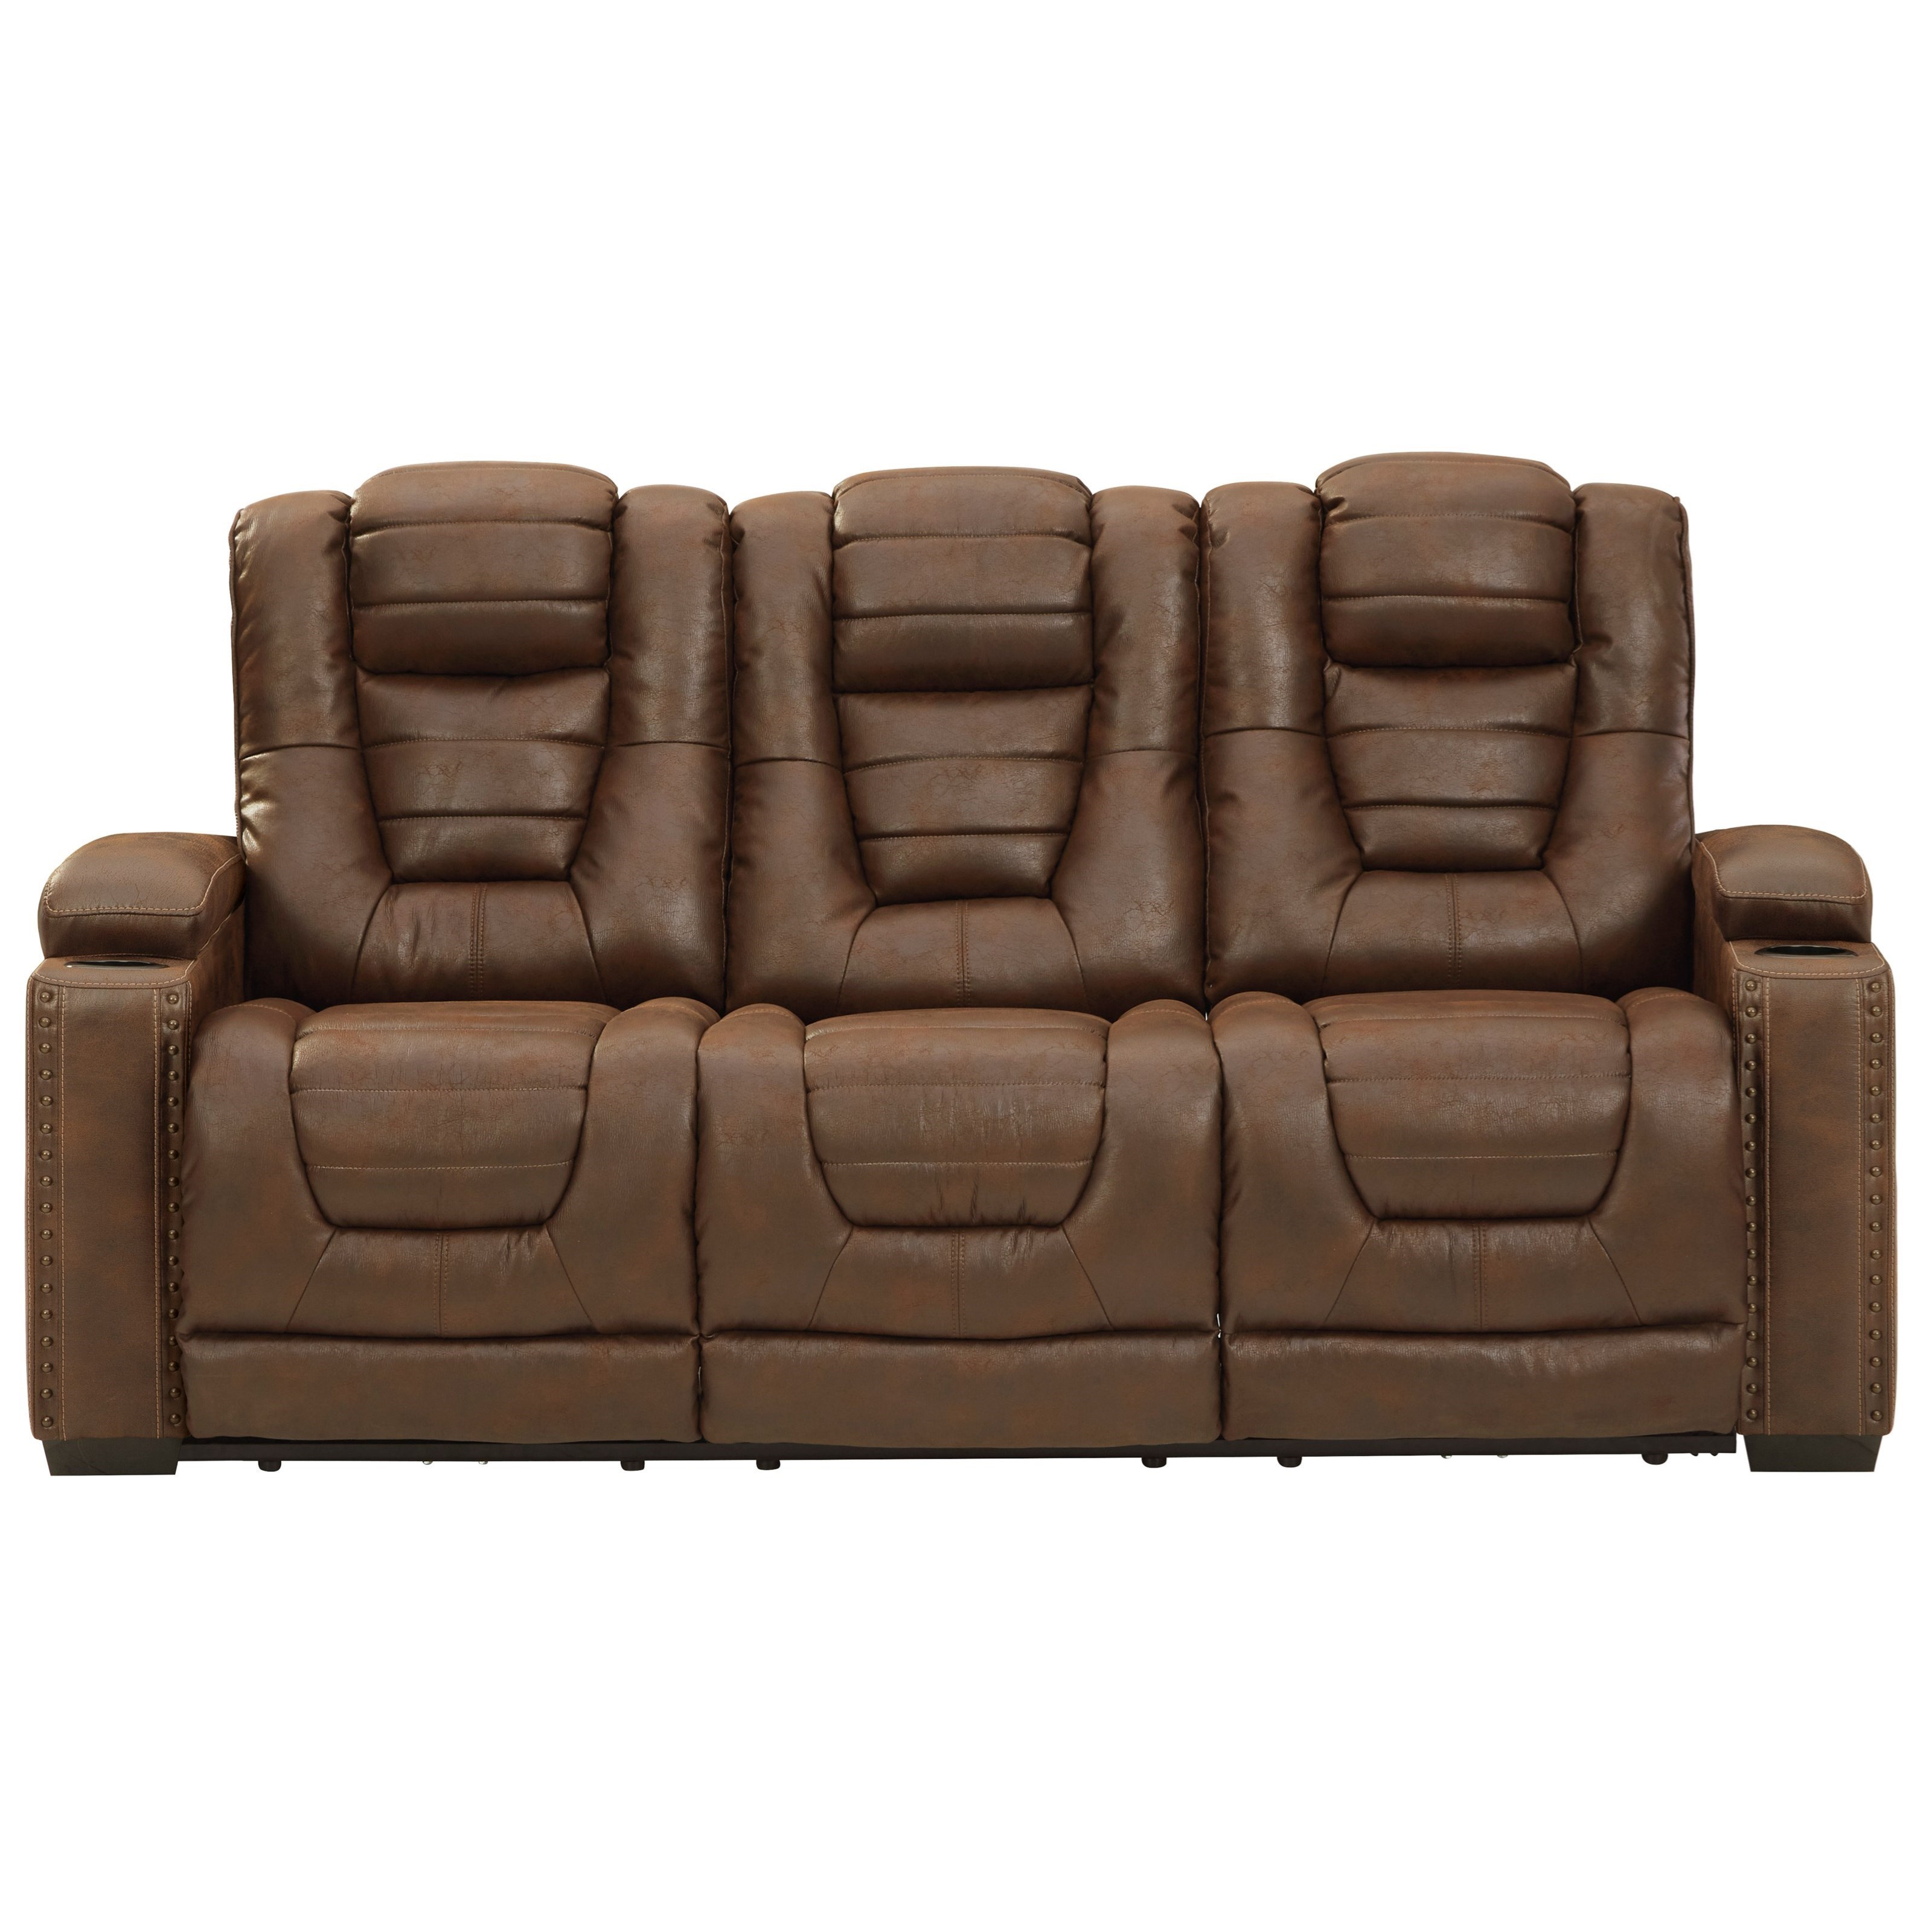 Faux Leather Power Reclining Sofa w/ Adjustable Headrests